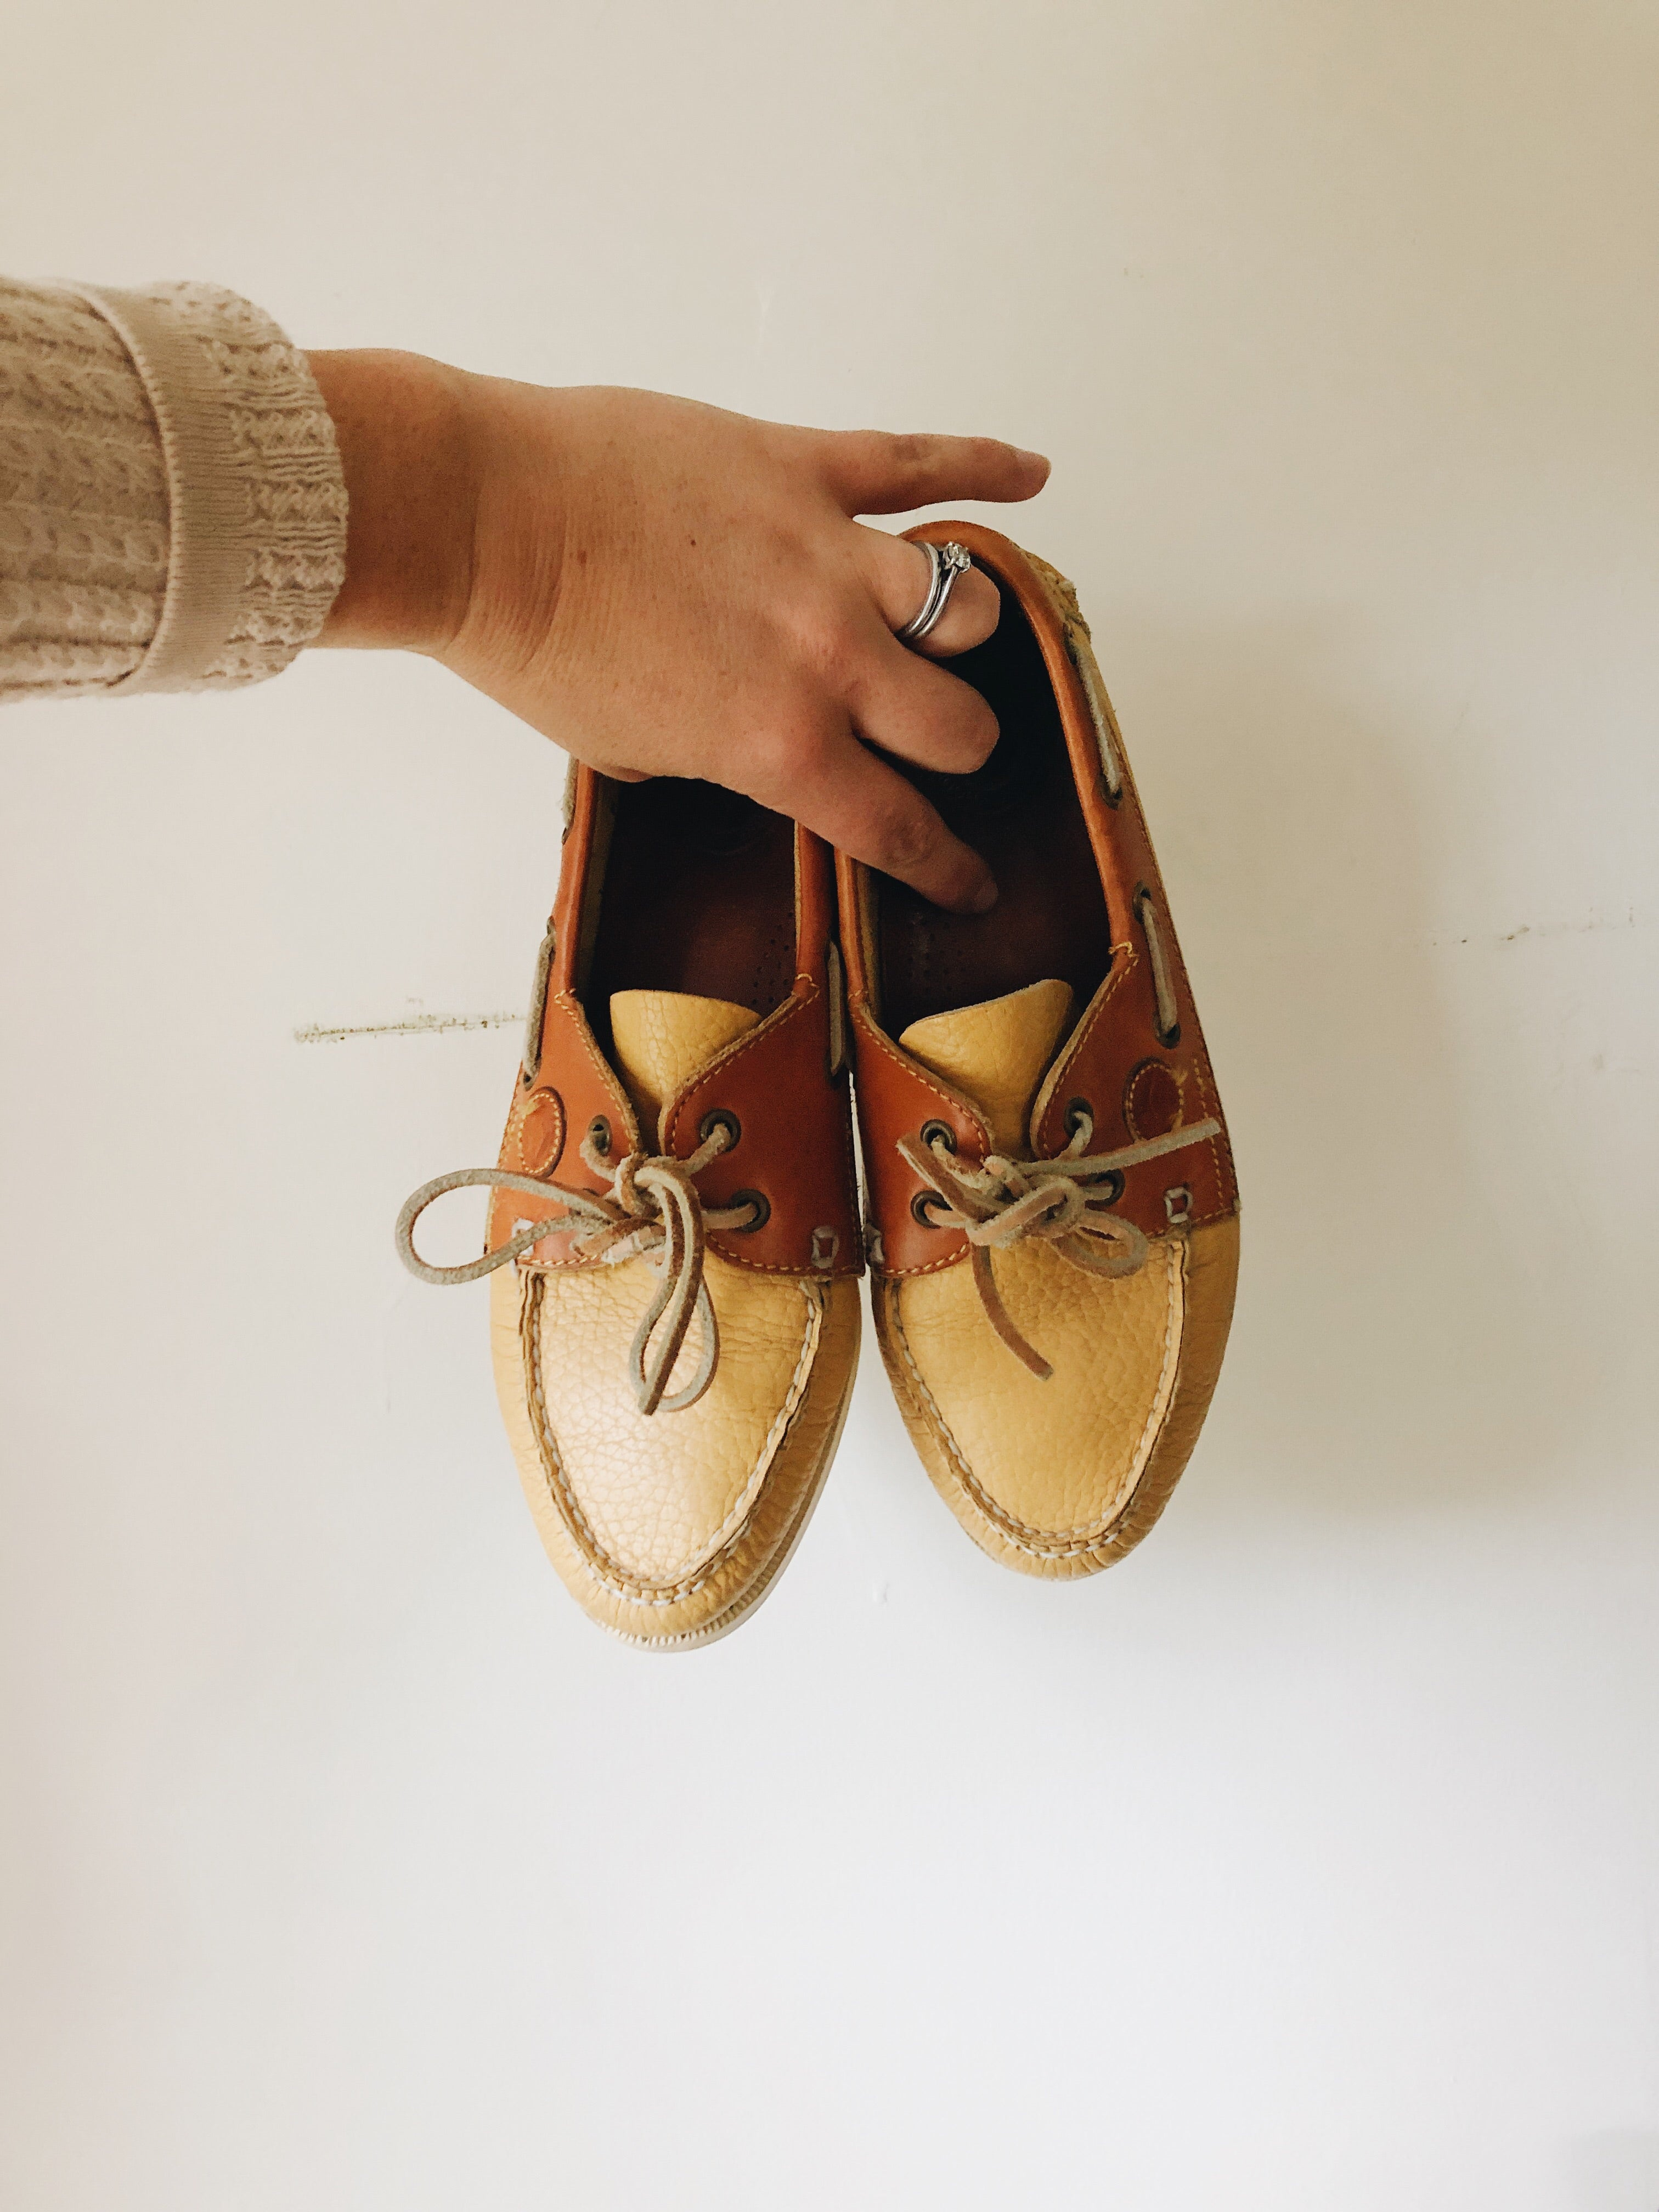 Vintage Dooney and Bourke Shoes- Size 8